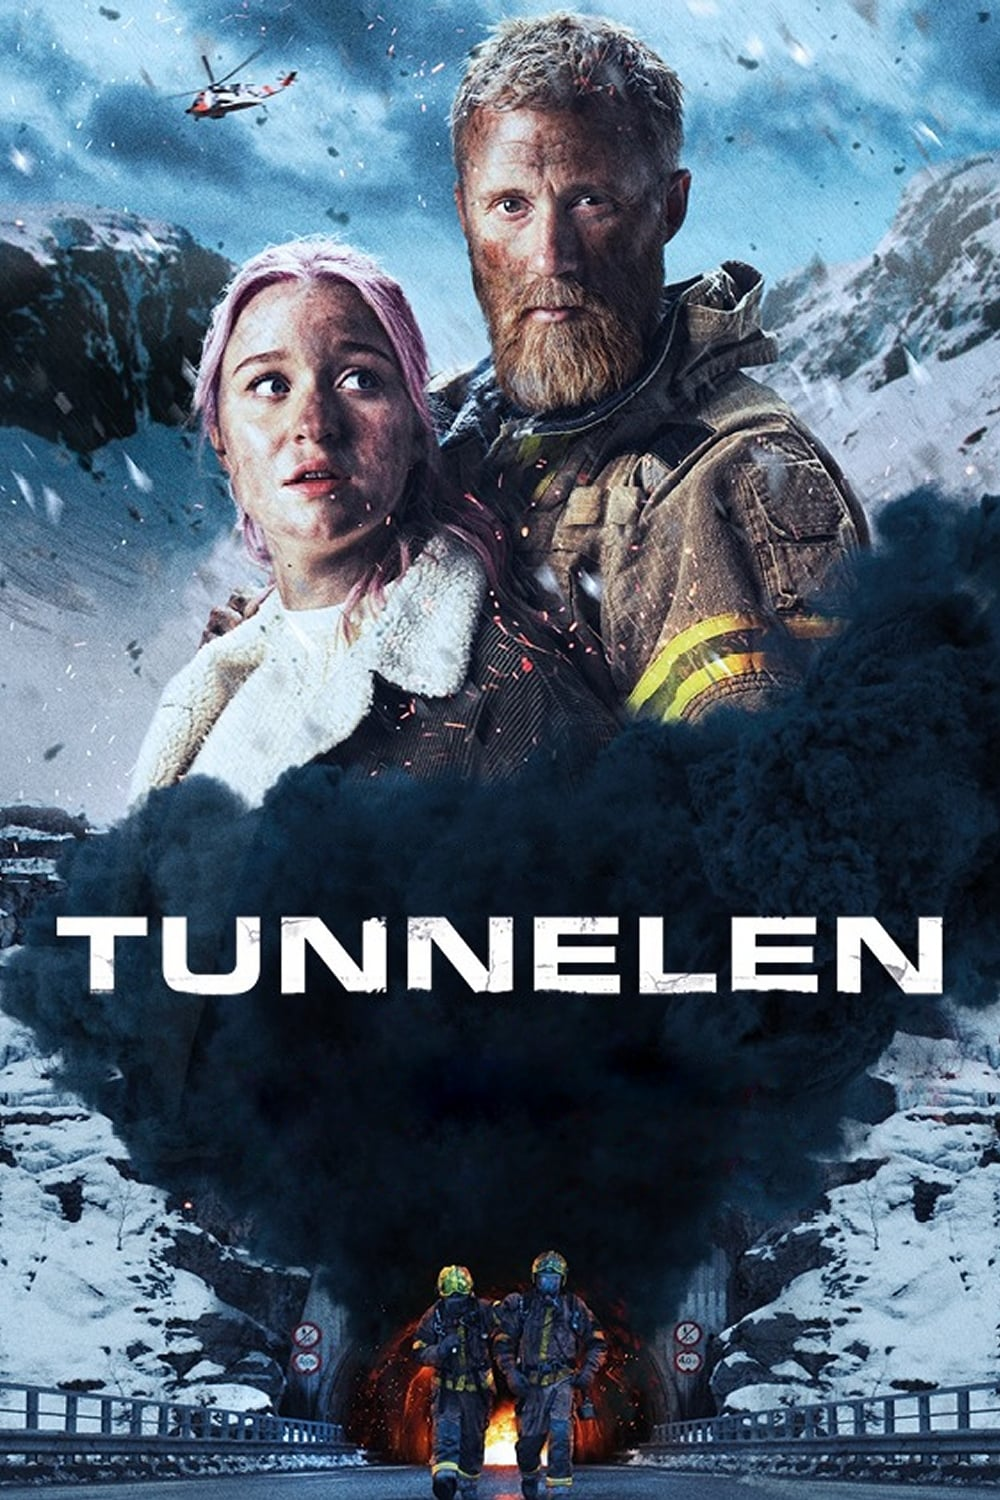 The Tunnel - Tunnelen - 2019Film streaming gratuit (free)